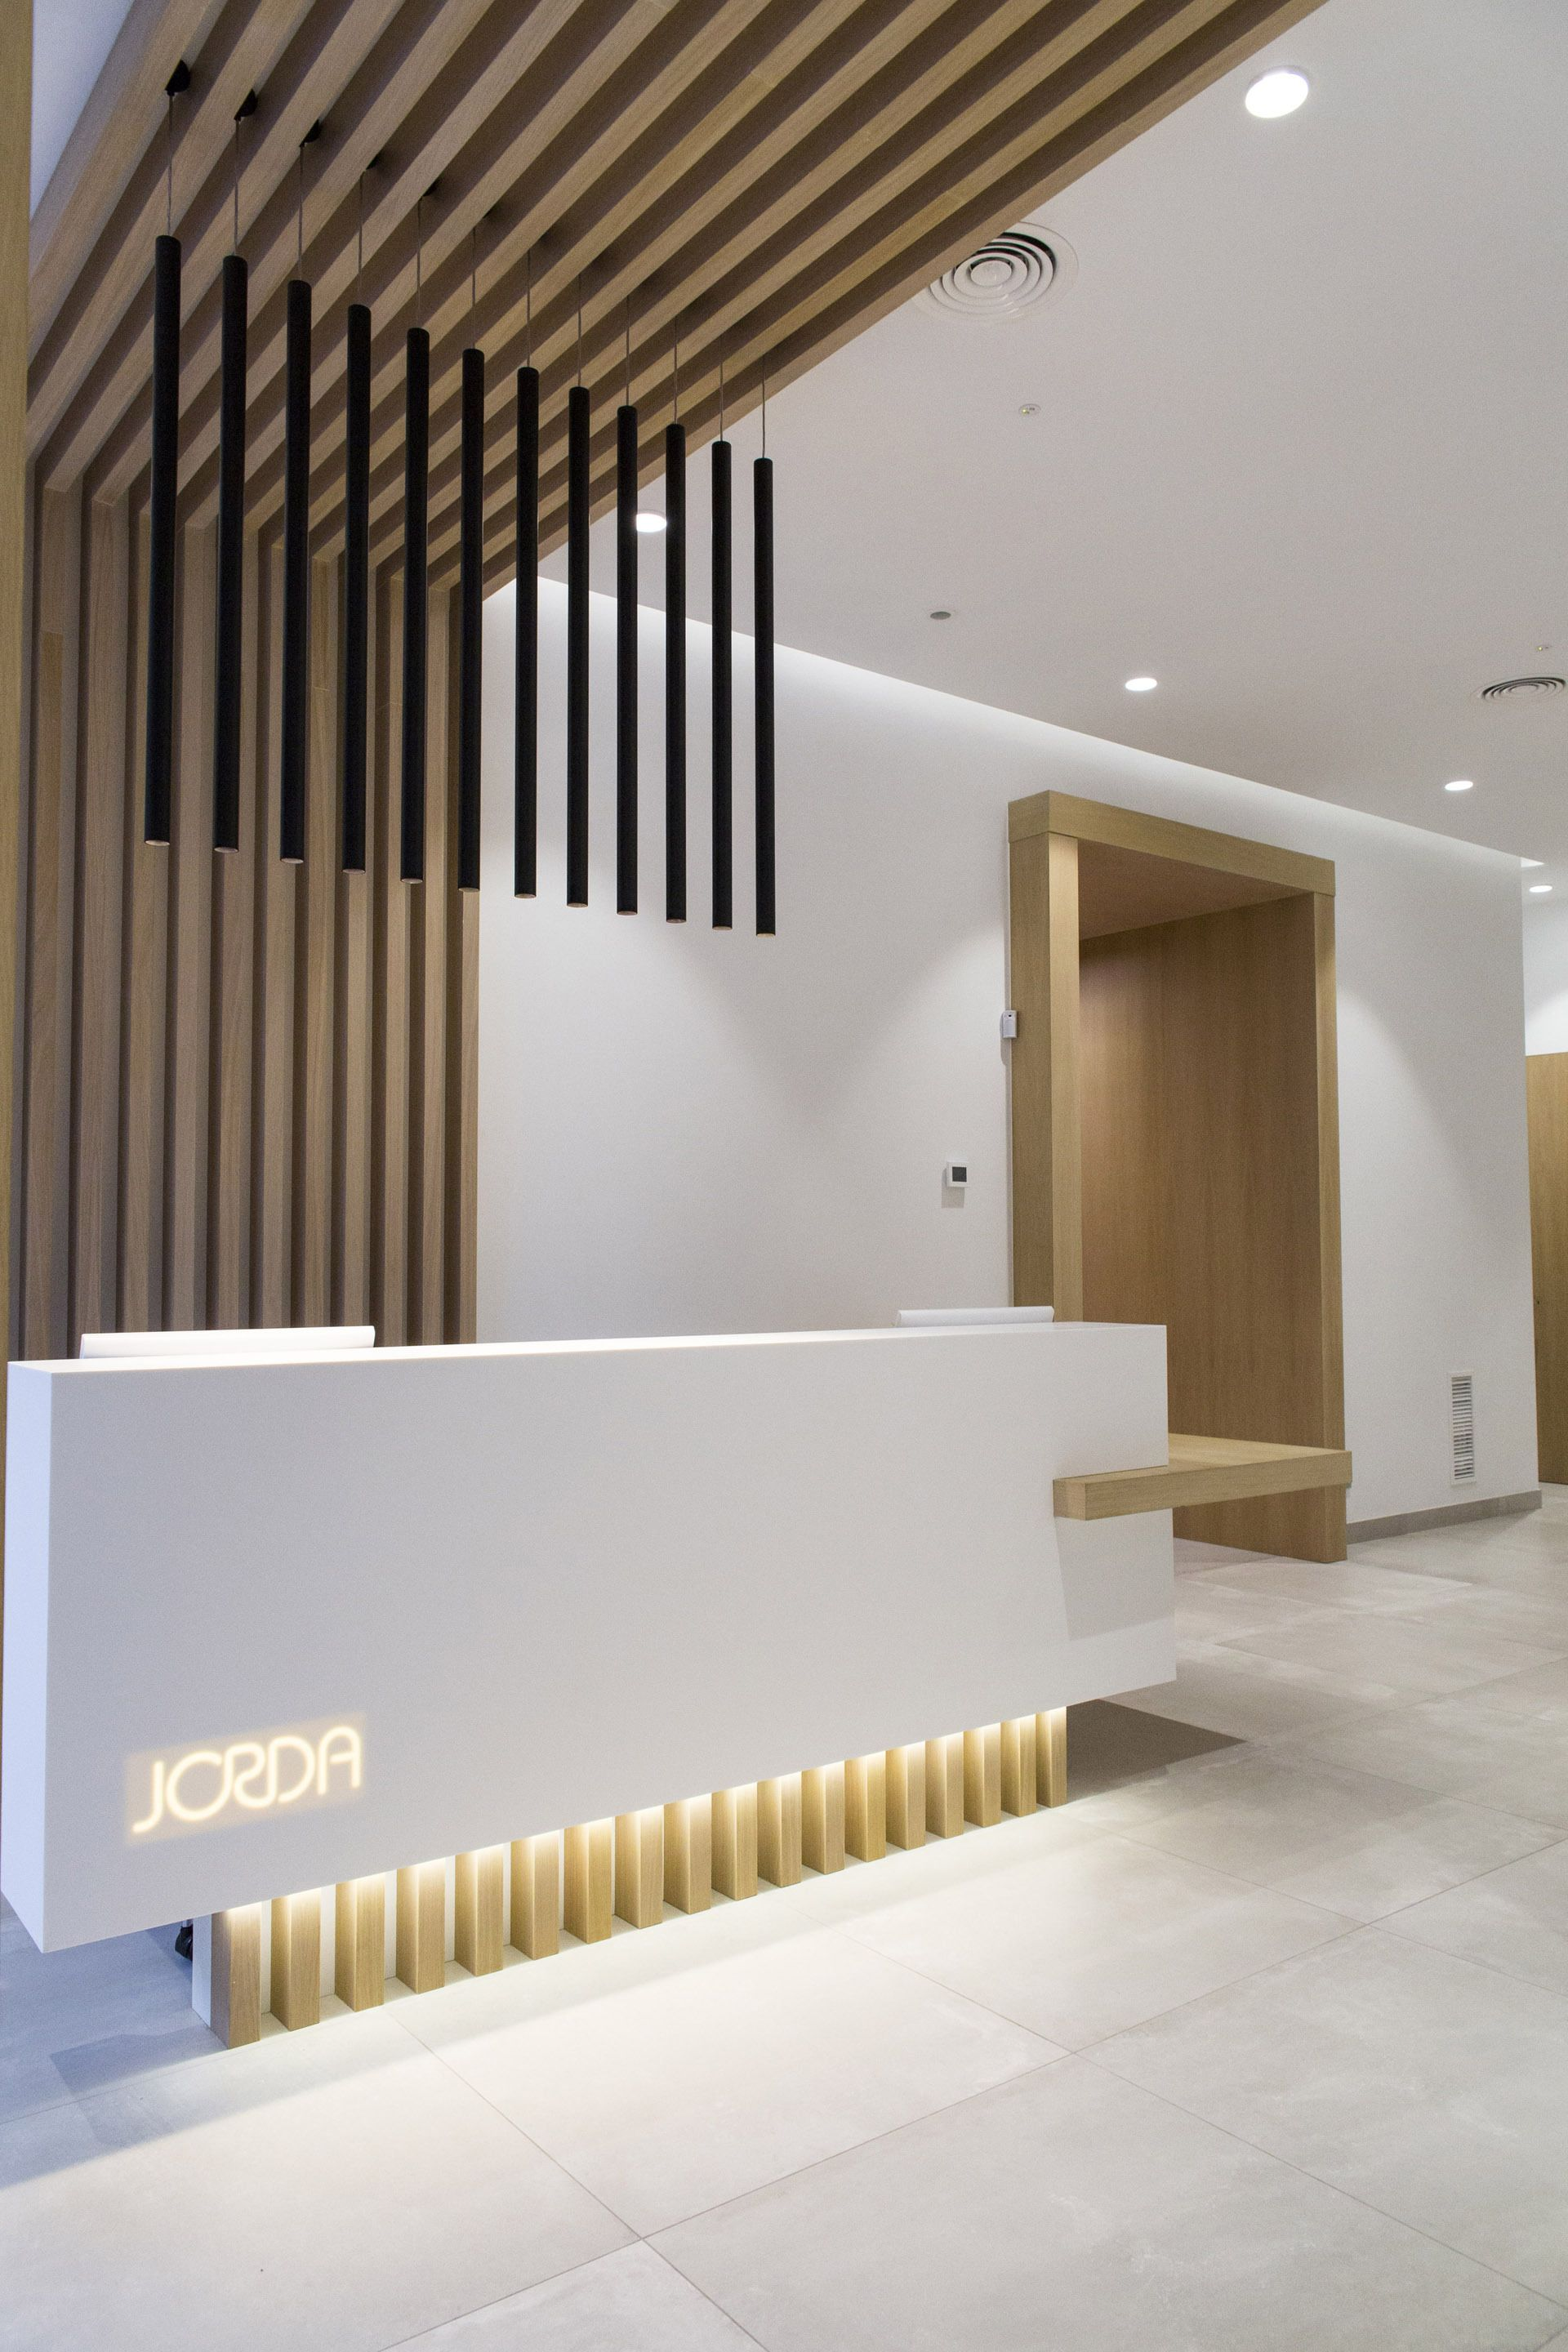 clnica dental jord bano interiorismo pinterest reception reception desks and desk design modern architecture interior office e32 architecture